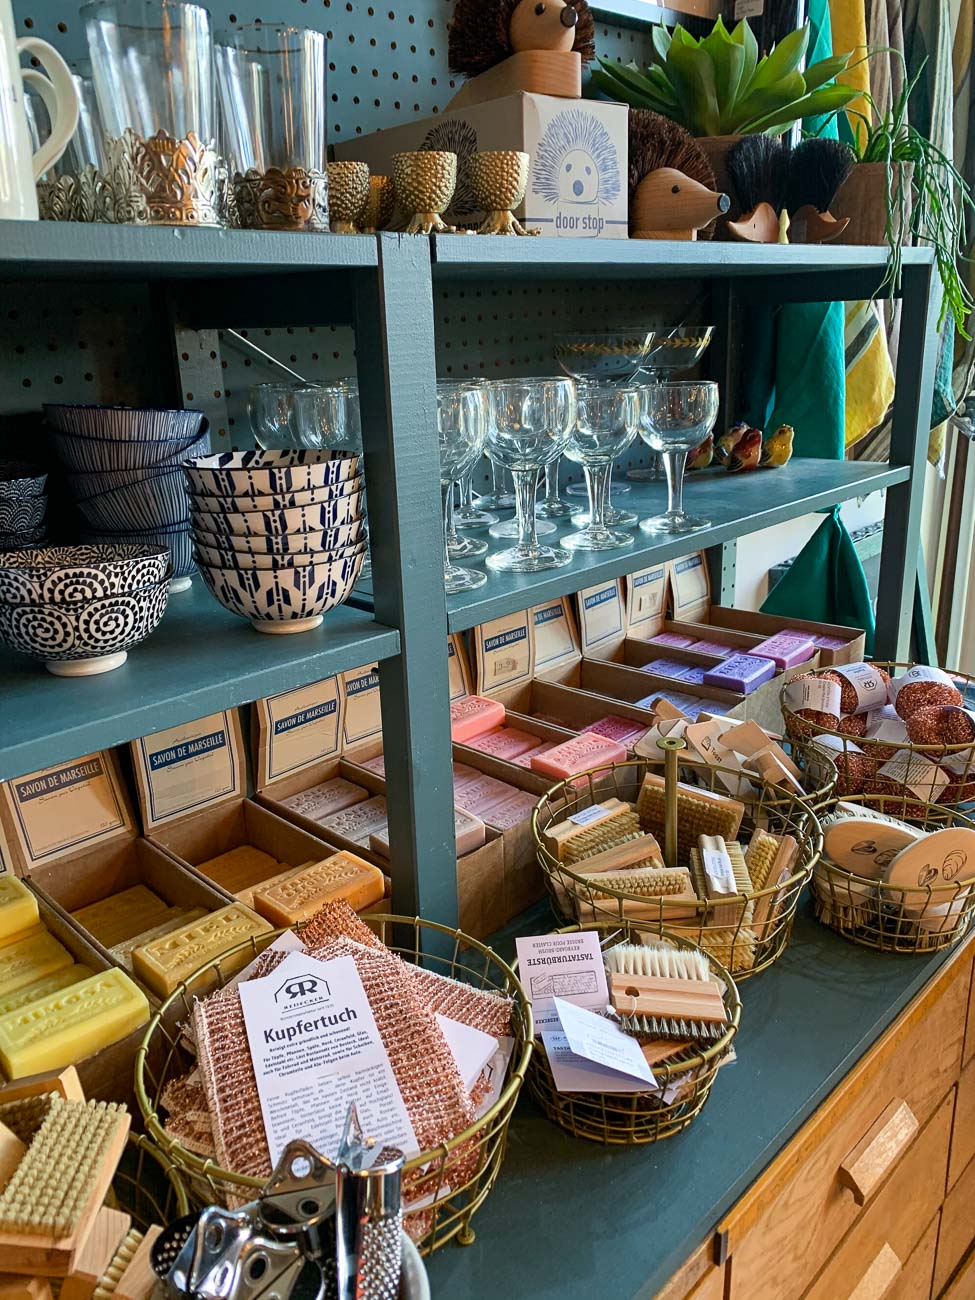 The selection of handmade soaps on offer at The Hoxton Store in Deal, Kent.